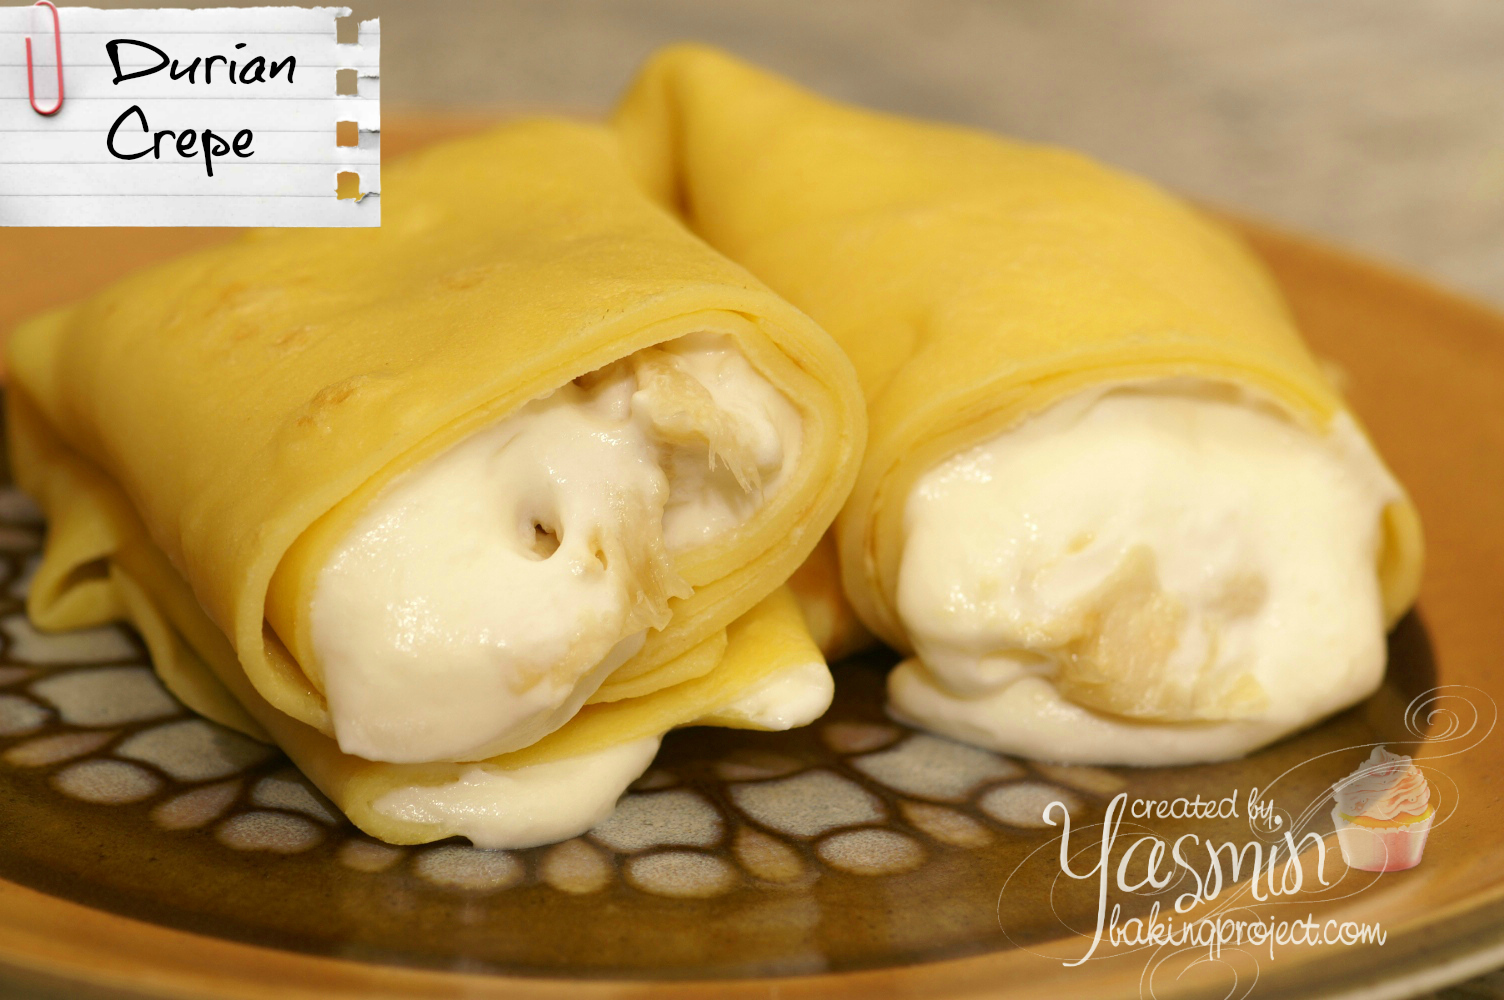 Durian Crepe 171 Baking Project